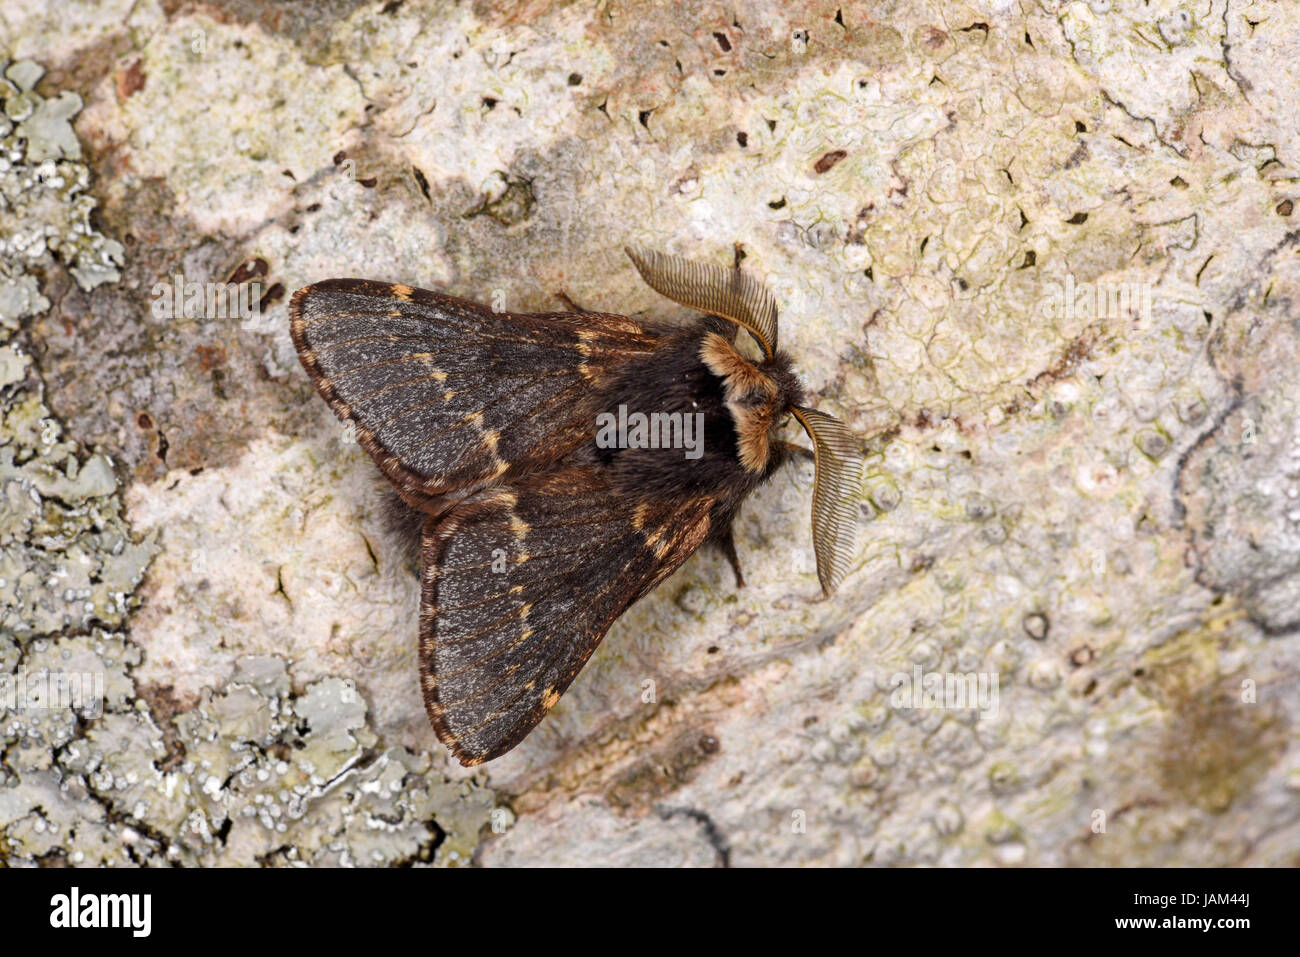 December Moth (Poecilocampa populi) adult male resting on tree trunk, Gwent, Wales, February - Stock Image